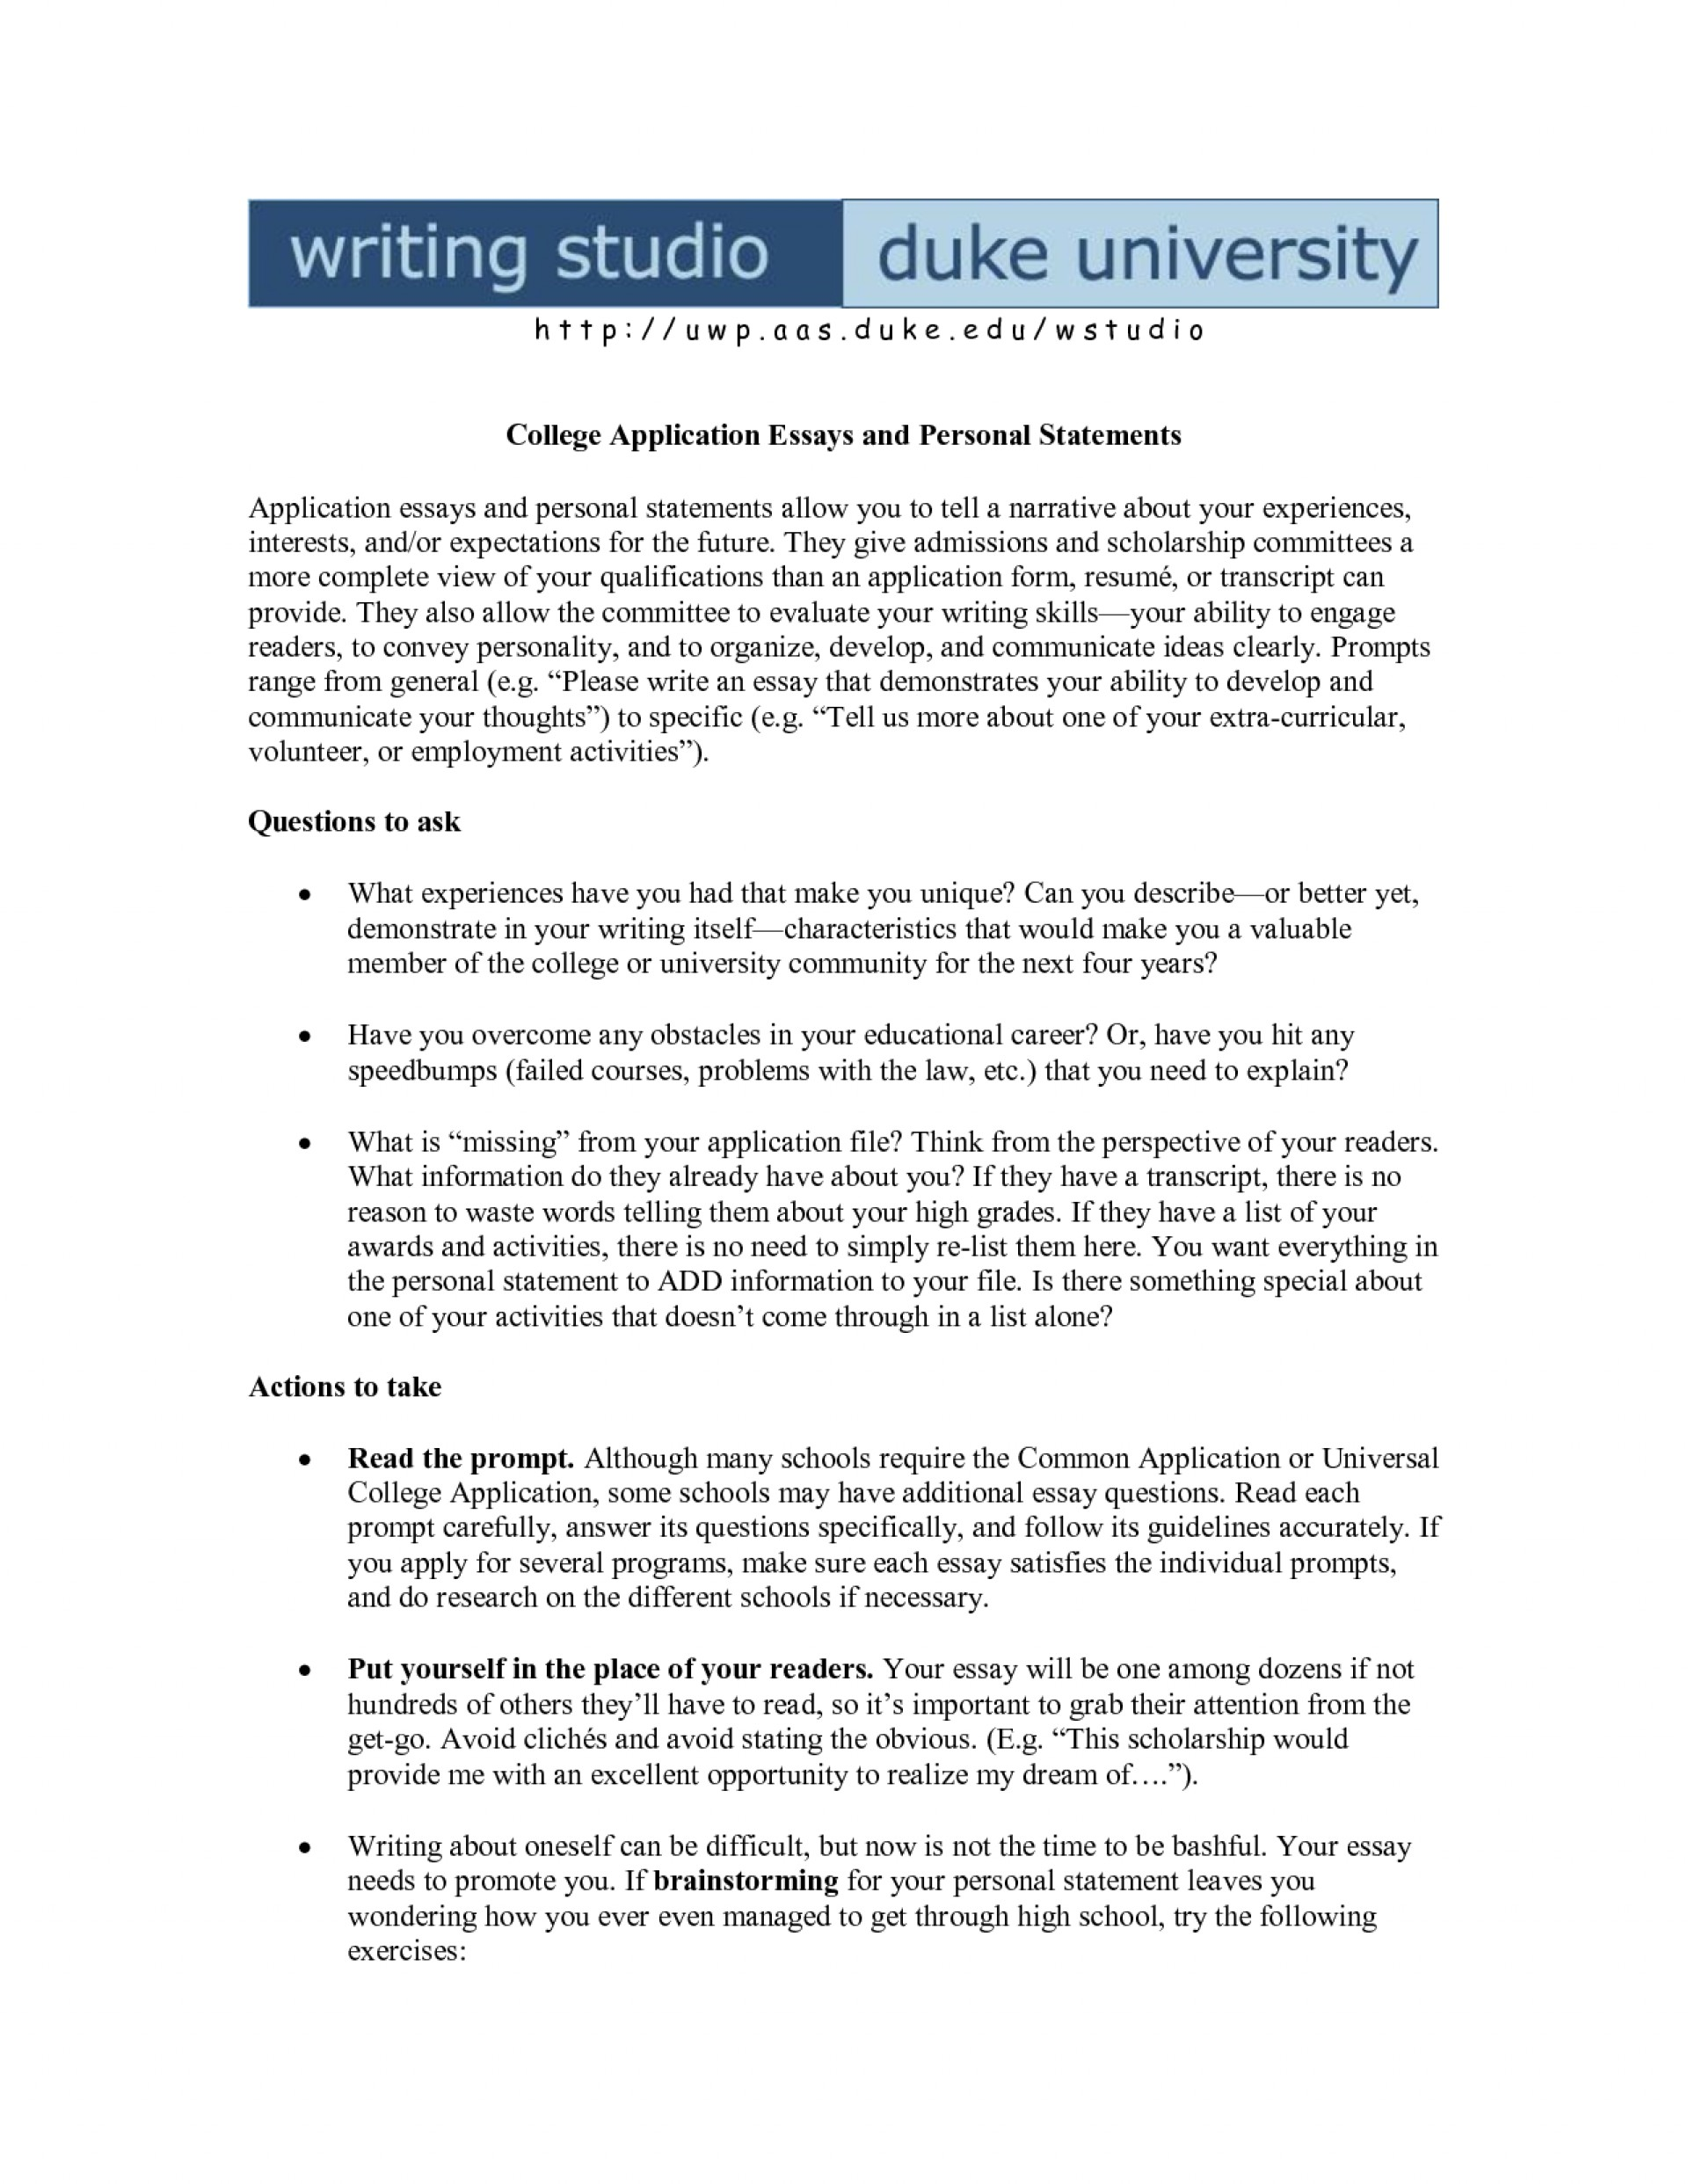 003 Essay Example Uclication Fuvq4 College Questions Common Dreaded App 2017 2017-18 1920